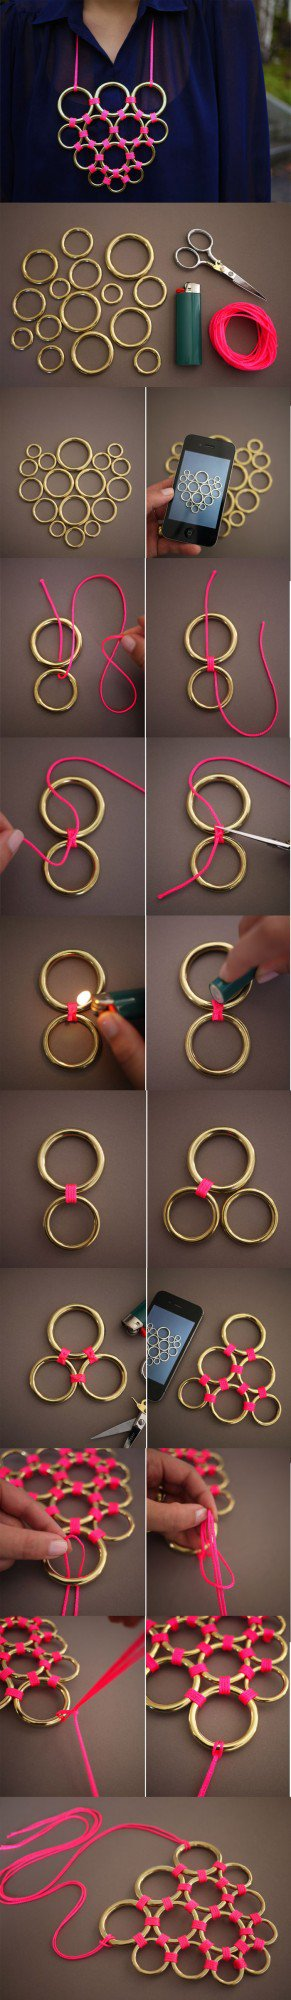 diy necklace jewelry tutorial craft ideas72